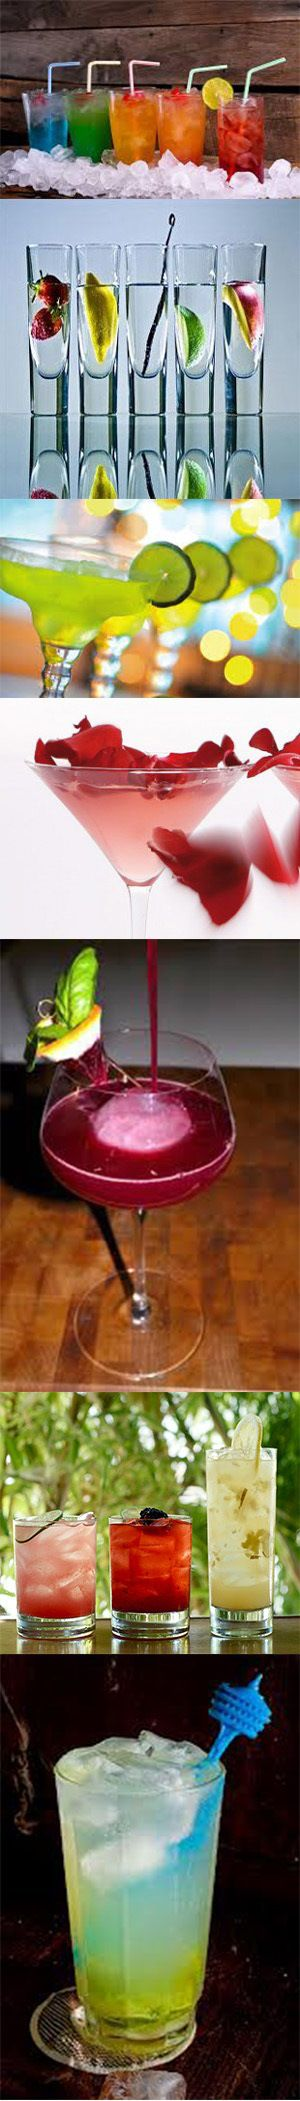 10 Famouse Bartender Recipes - Part 2 - Daily Update